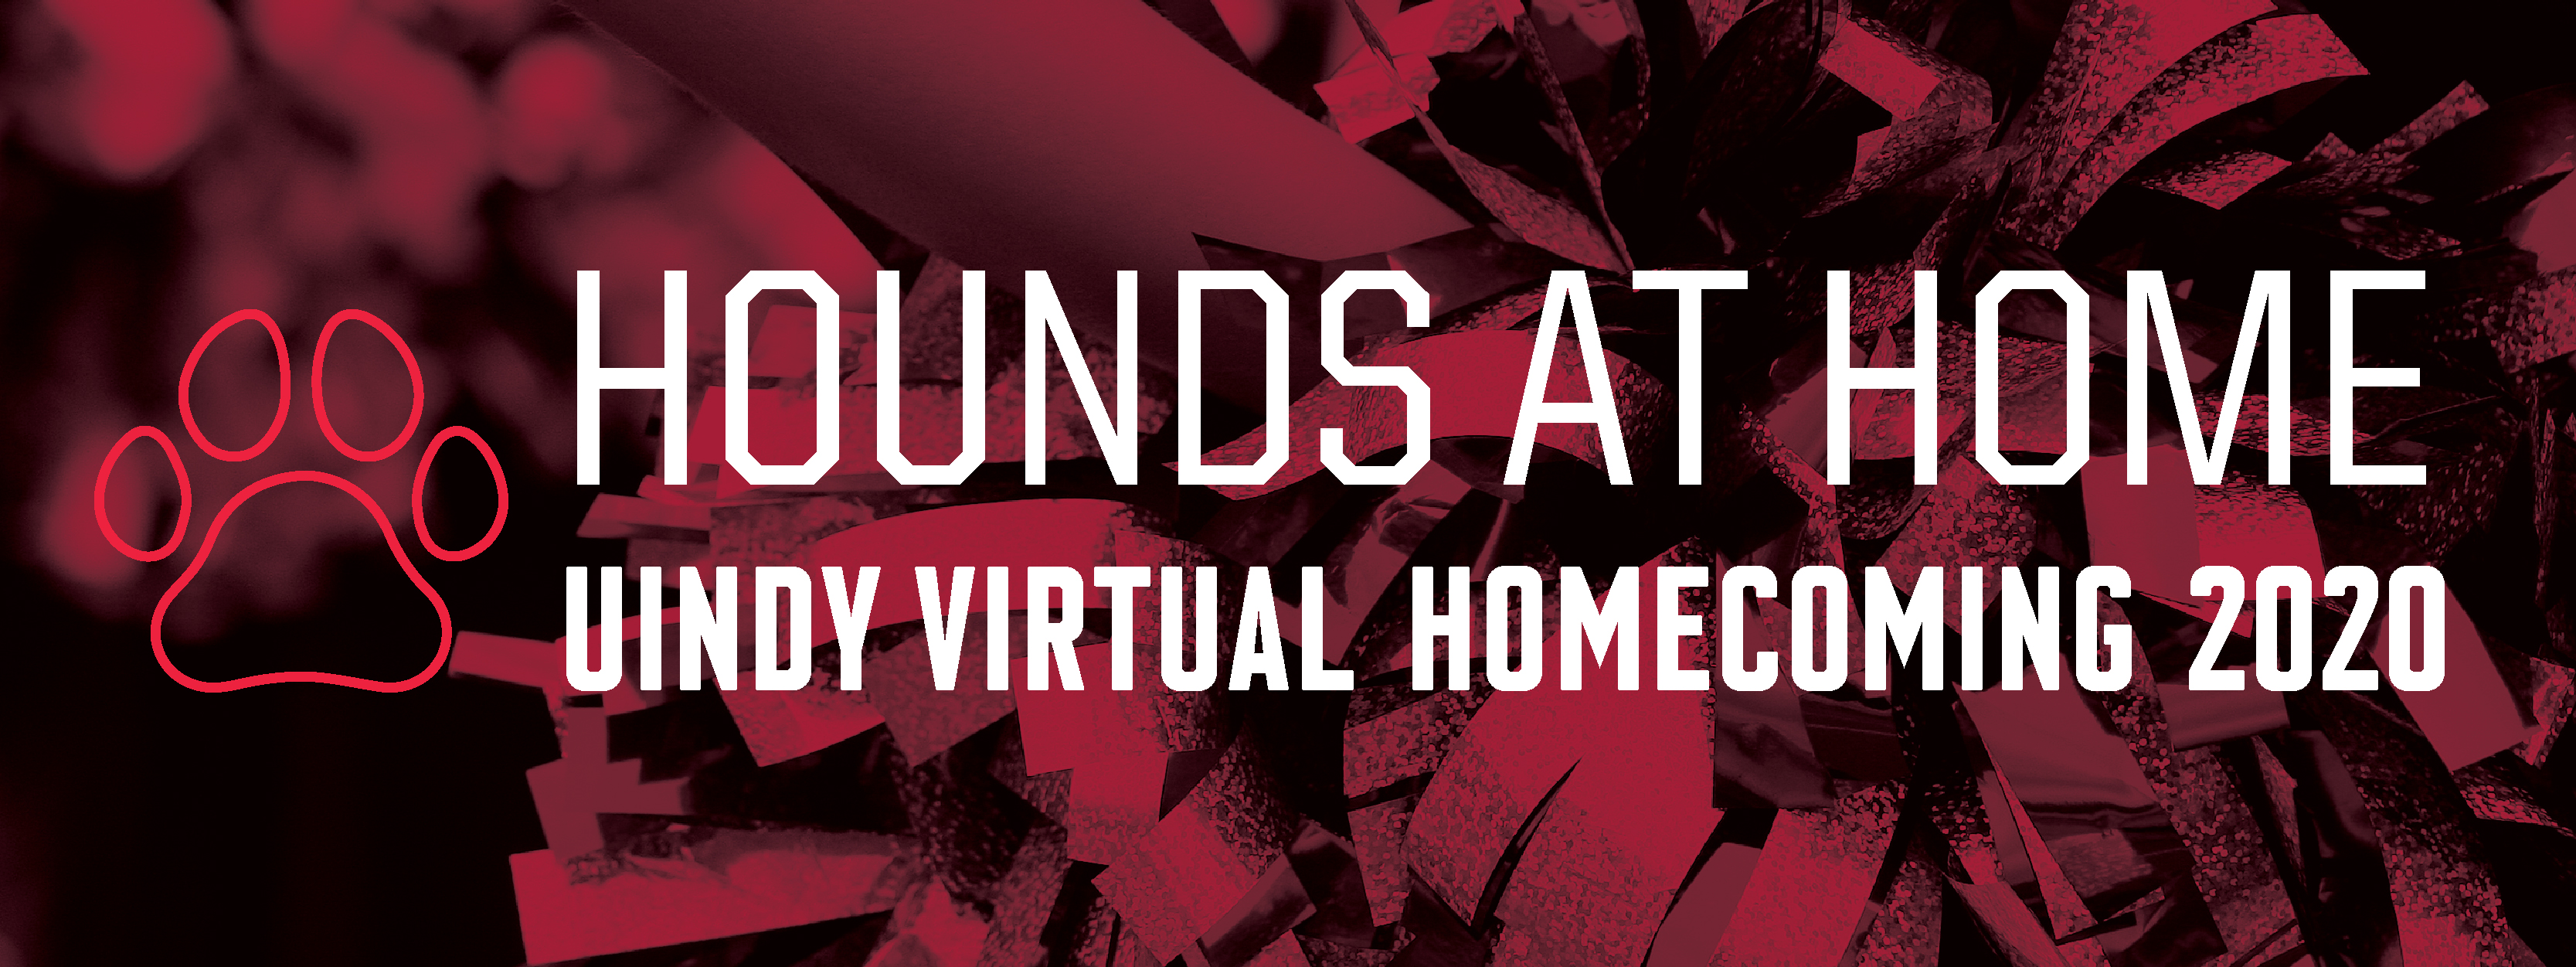 Hounds at Home: UIndy Virtual Homecoming